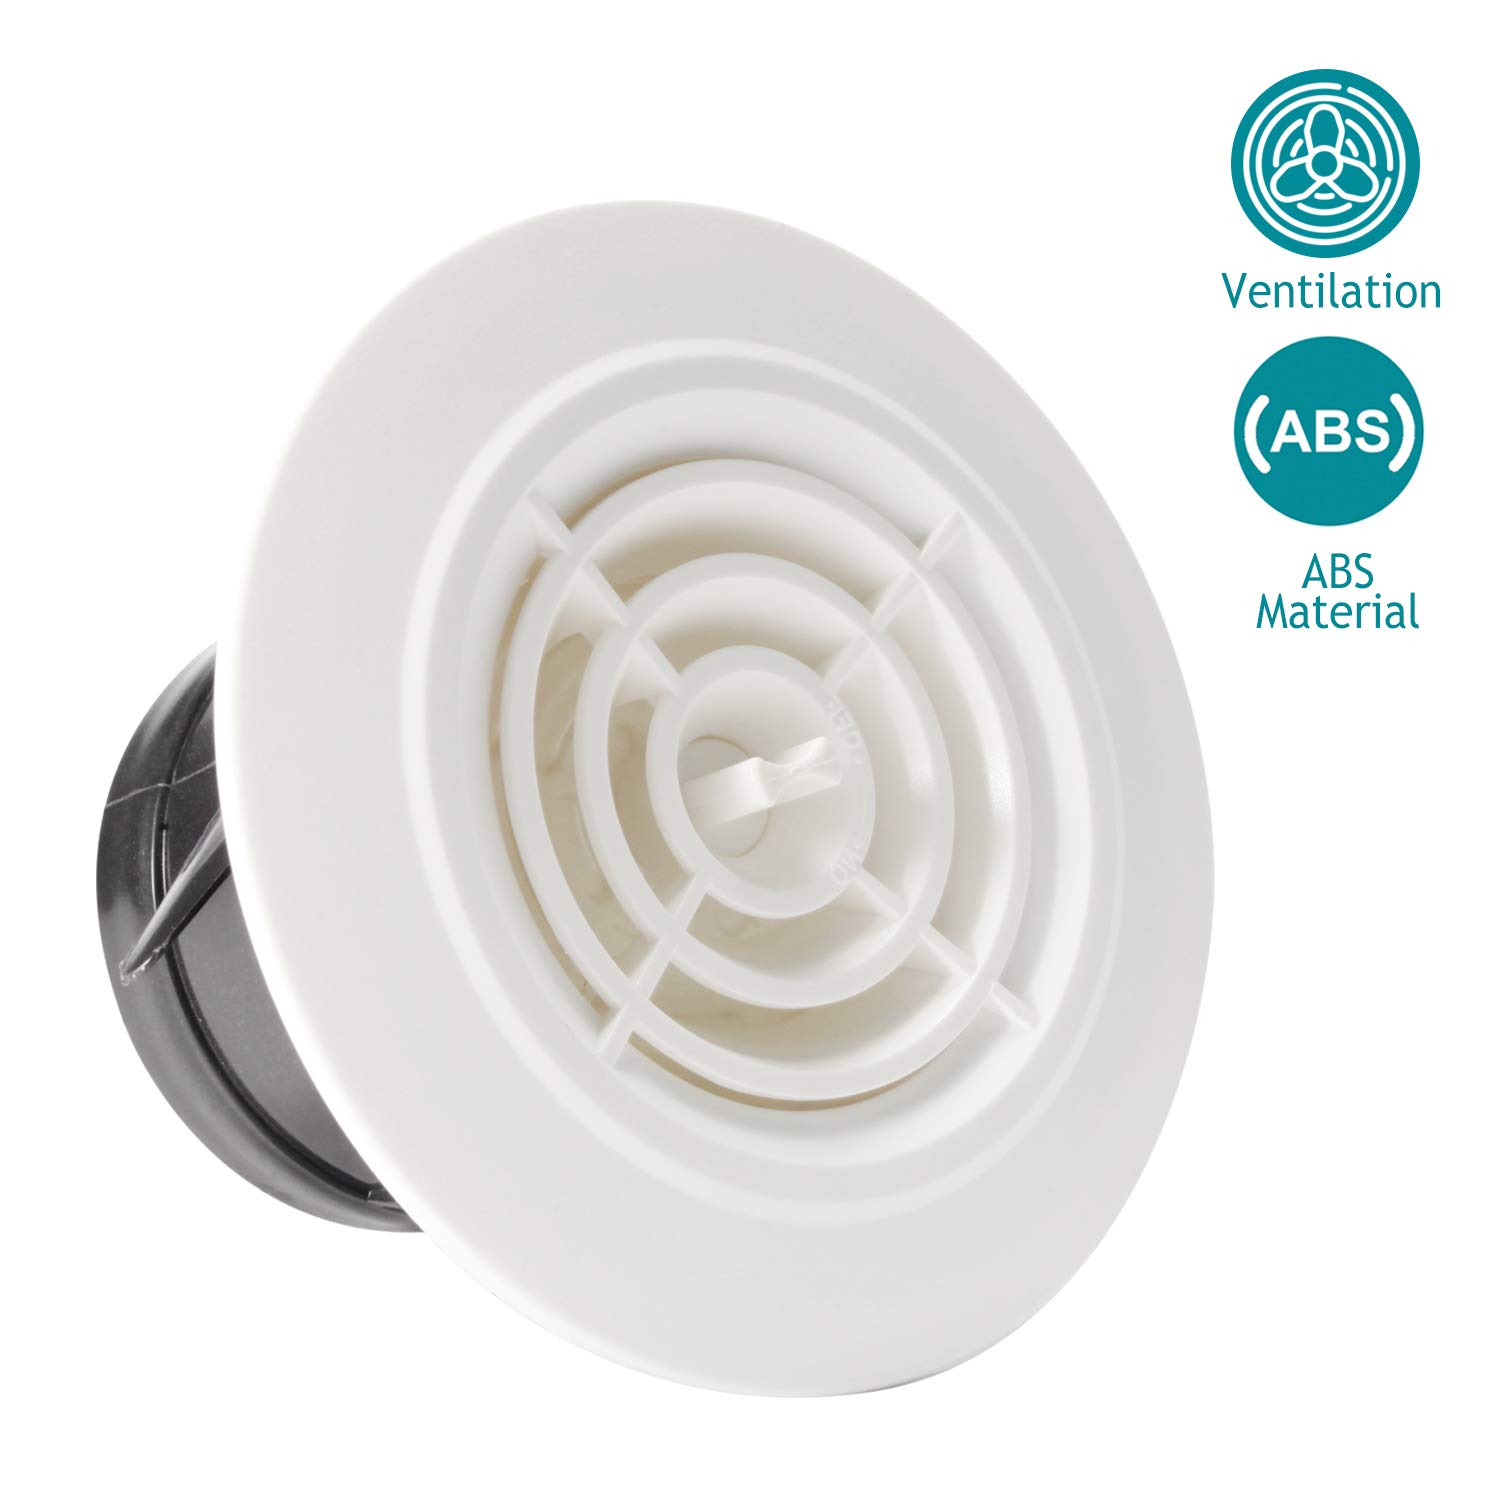 HG POWER 3 Inch Round Air Vent ABS Louver White Grille Cover Adjustable Exhaust Vent Fit for Bathroom Office Kitchen Ventilation